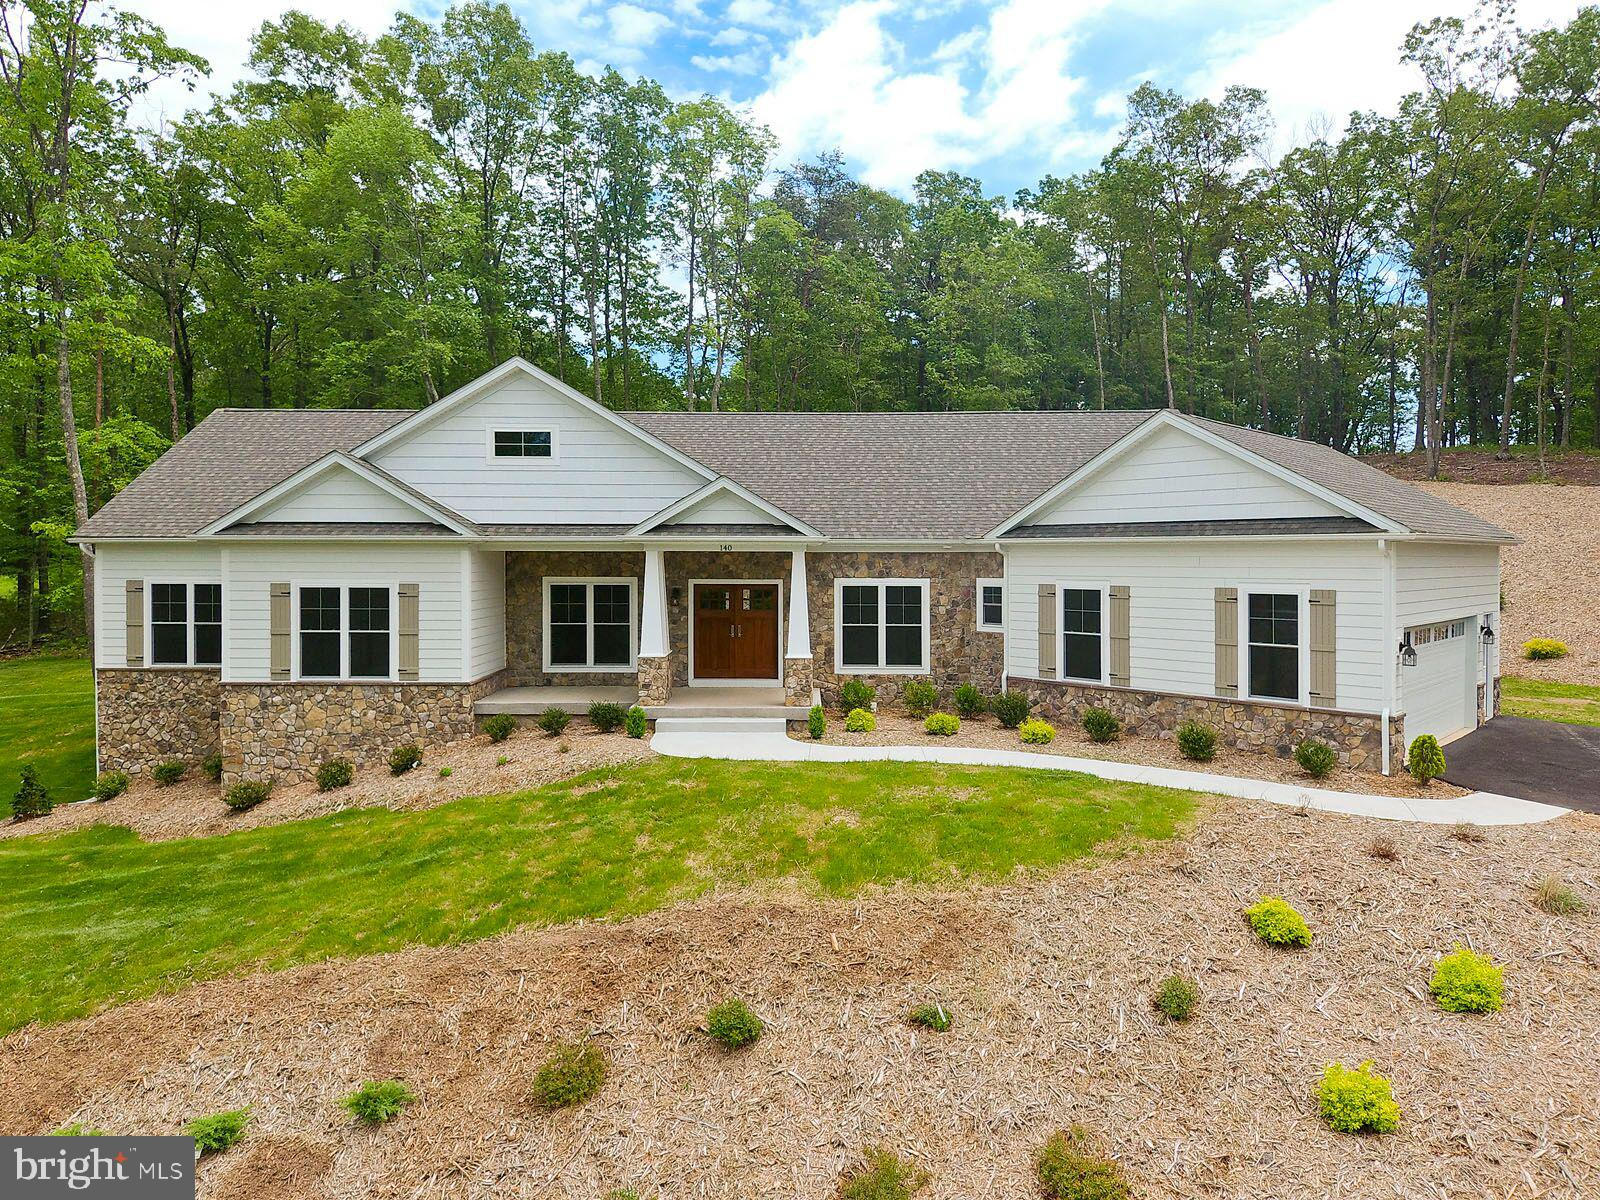 GOLDS HILL ROAD, WINCHESTER, VA 22603